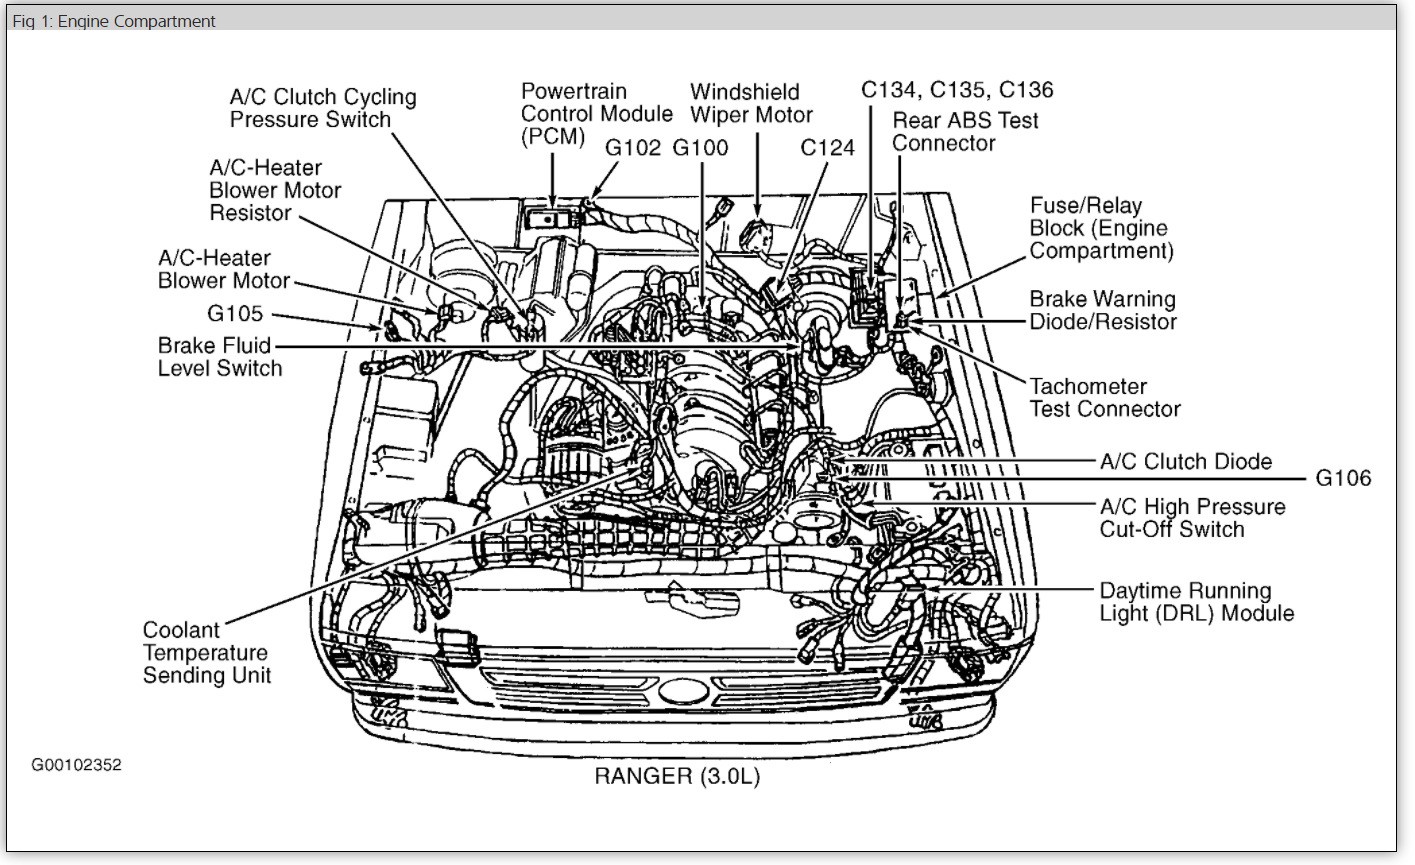 1999 Ford Ranger 4x4 Control Module Location